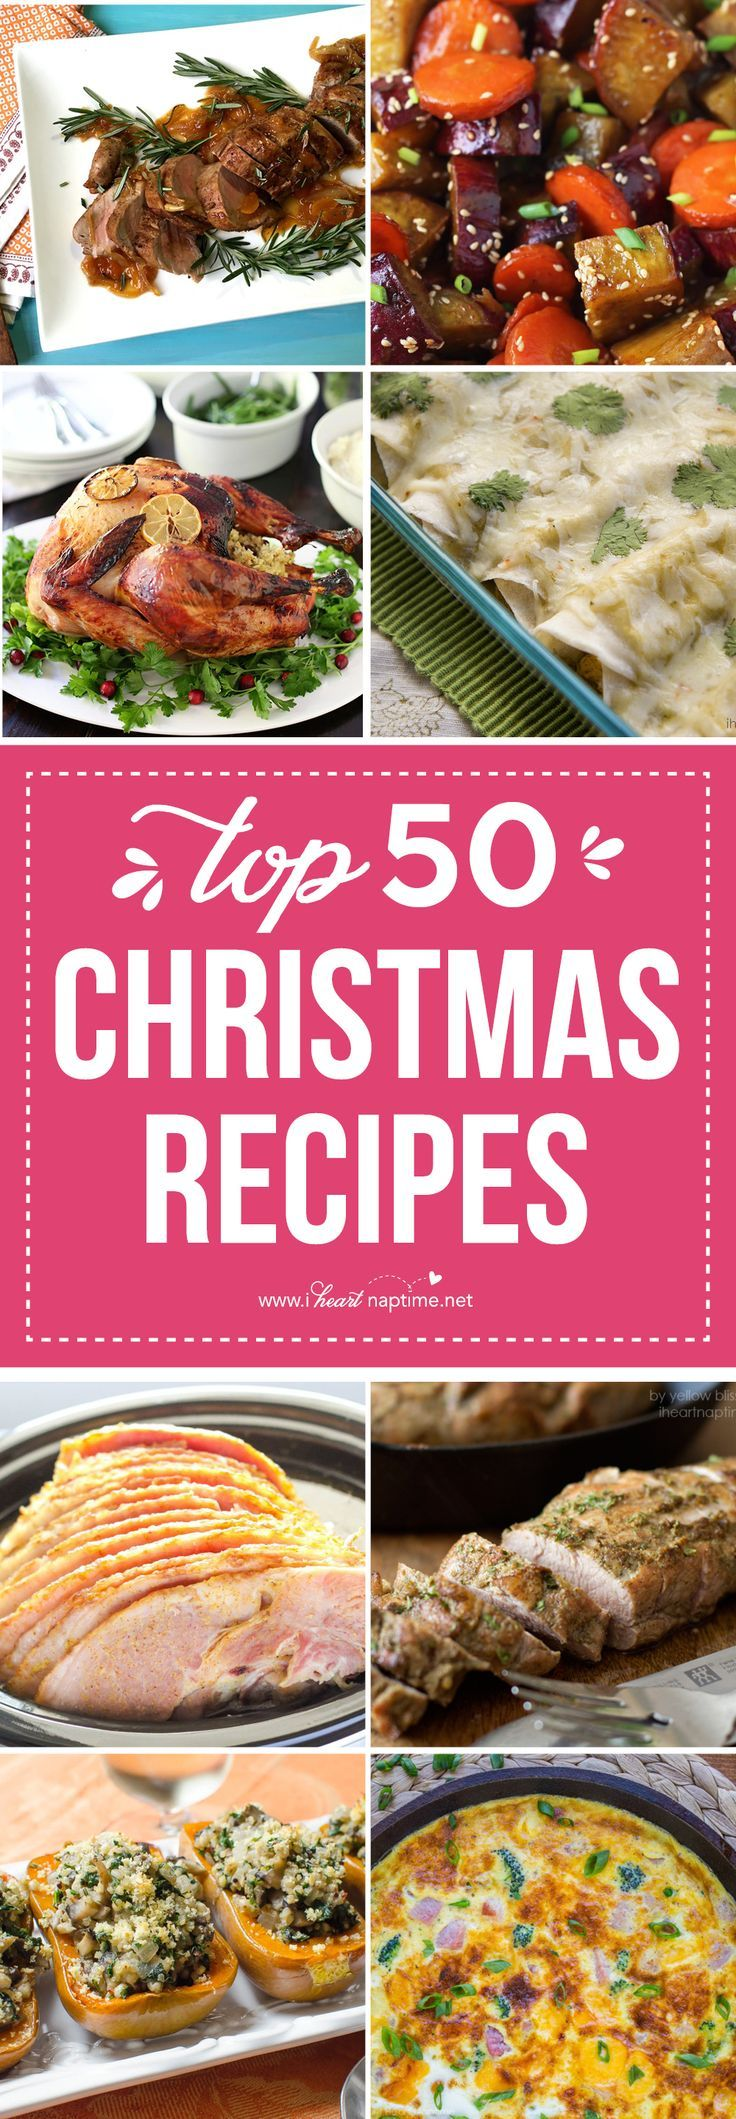 Traditional Christmas Dinner Menu.Top 50 Christmas Dinner Recipes Most Pinned Holiday